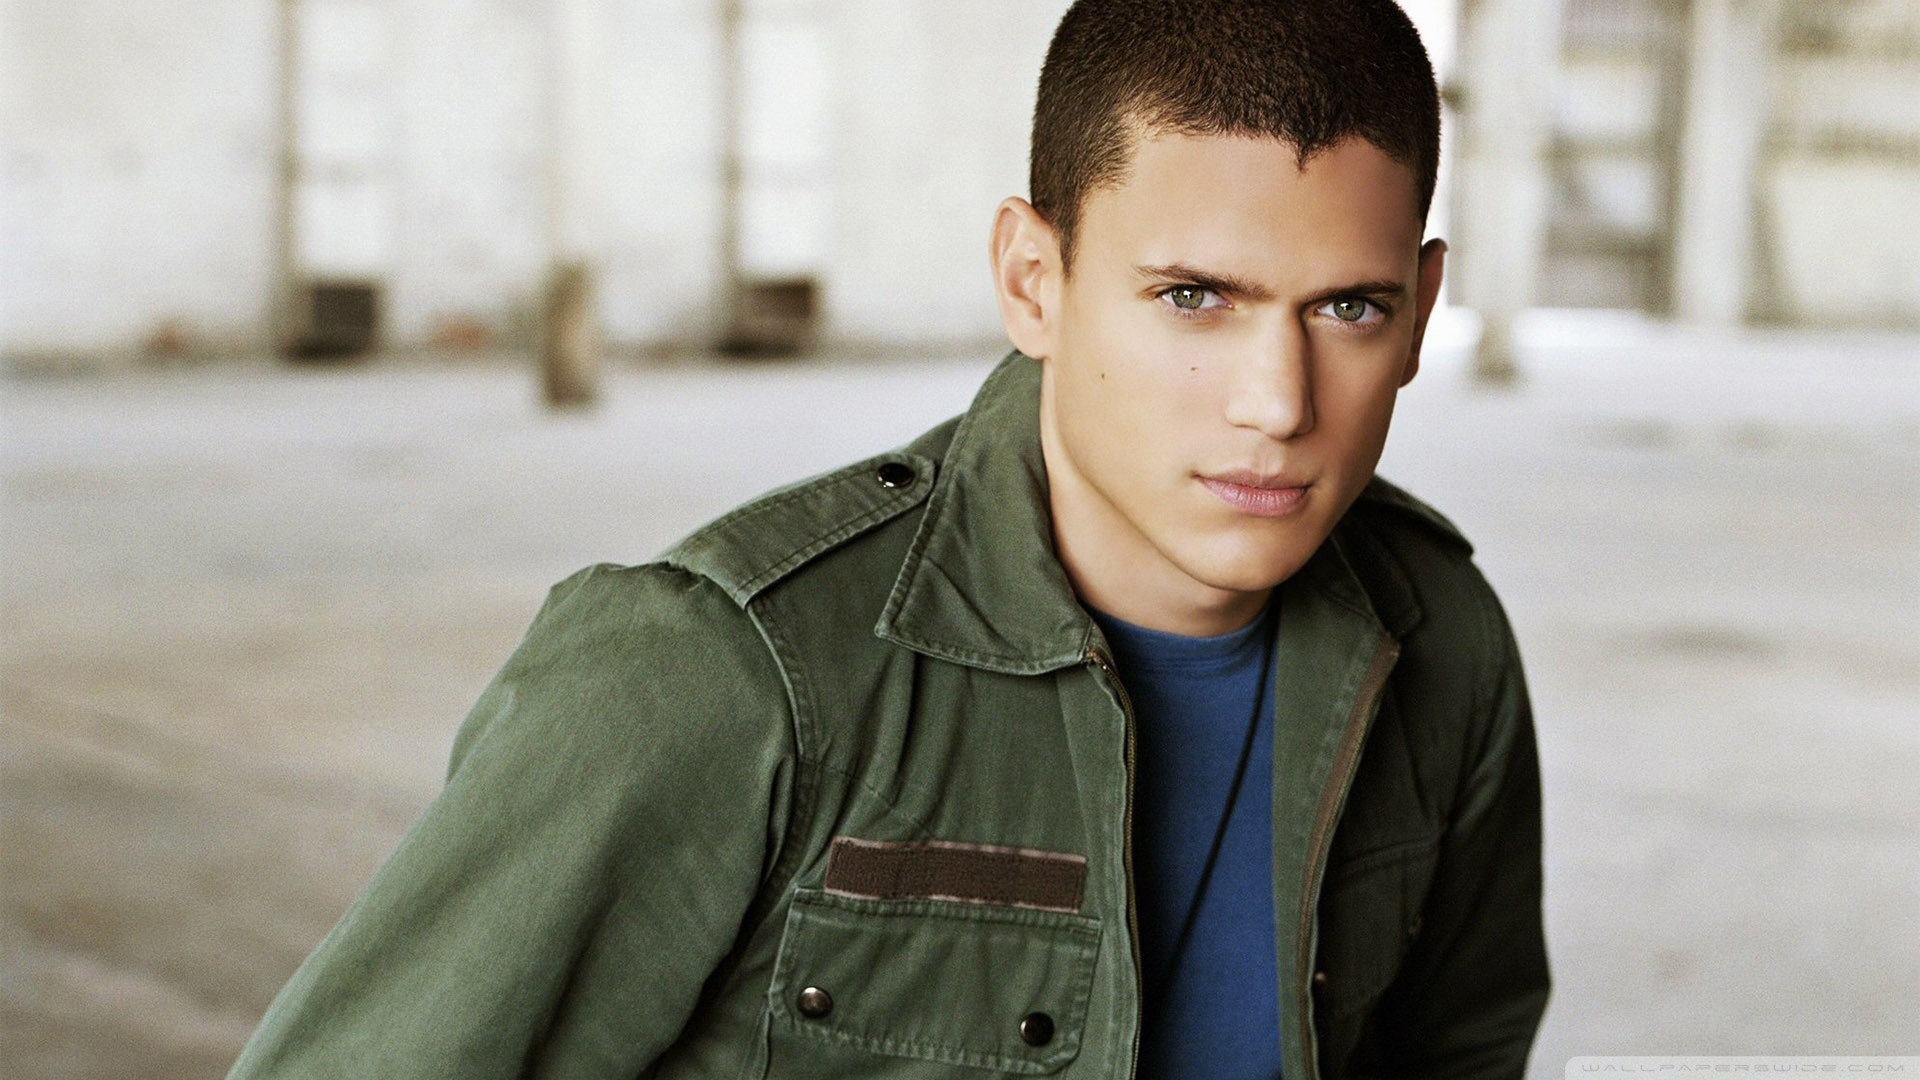 1920x1080 Wentworth Miller. Wallpaper: Michael Scofield Wentworth Miller brothers Prison  Break ...